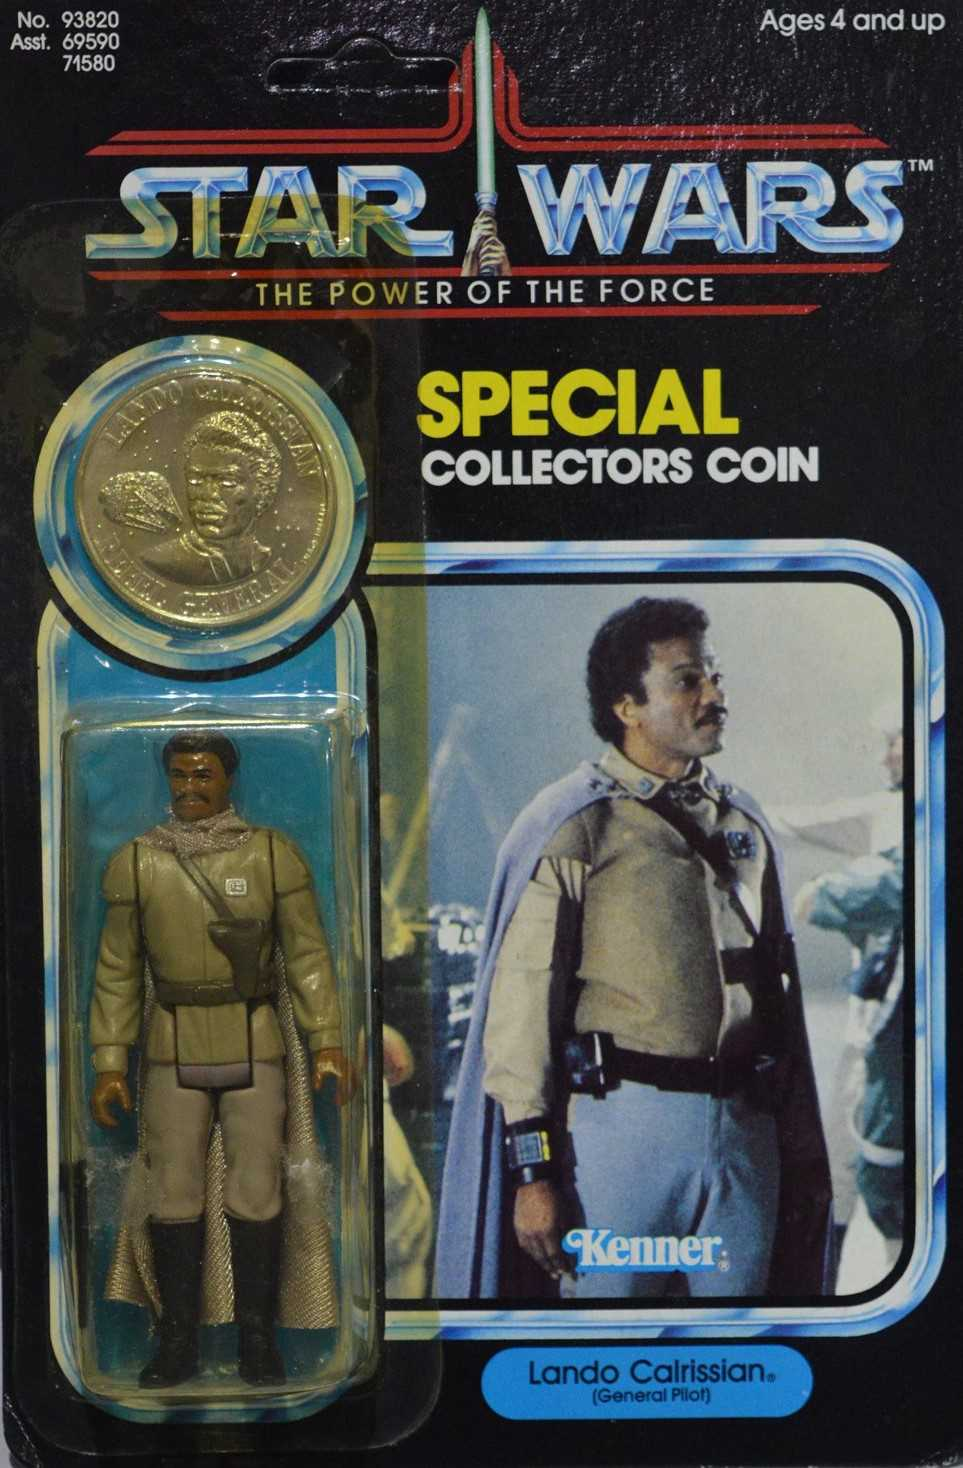 Lot 1242-Star Wars Collectors coin Lando Calrissian by Kenner